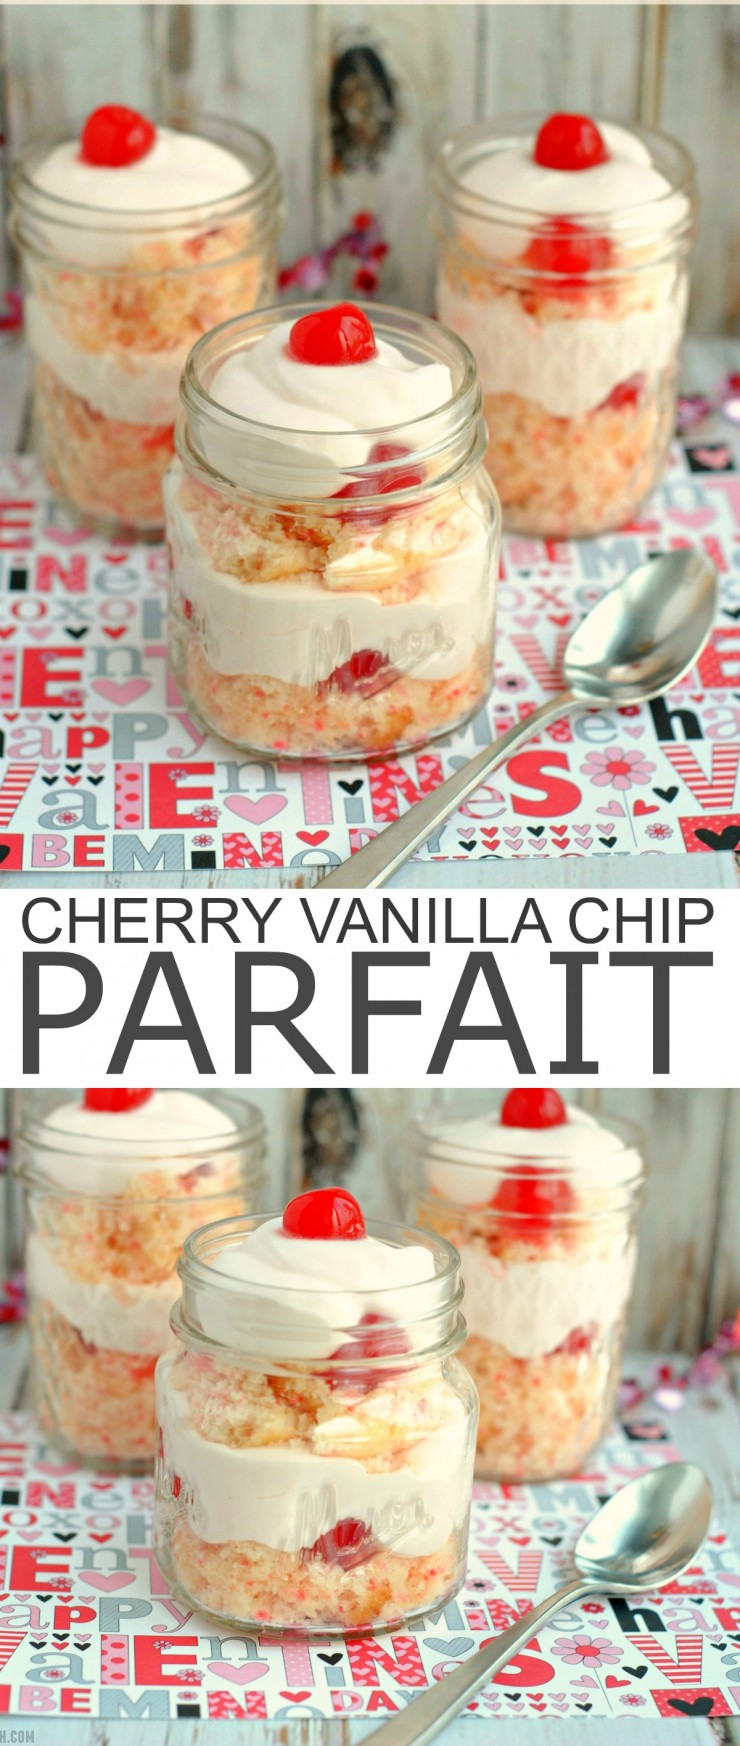 This Cherry Vanilla Chip Parfait is an easy but romantic dessert I wanted to share with you just in time for Valentine's Day.